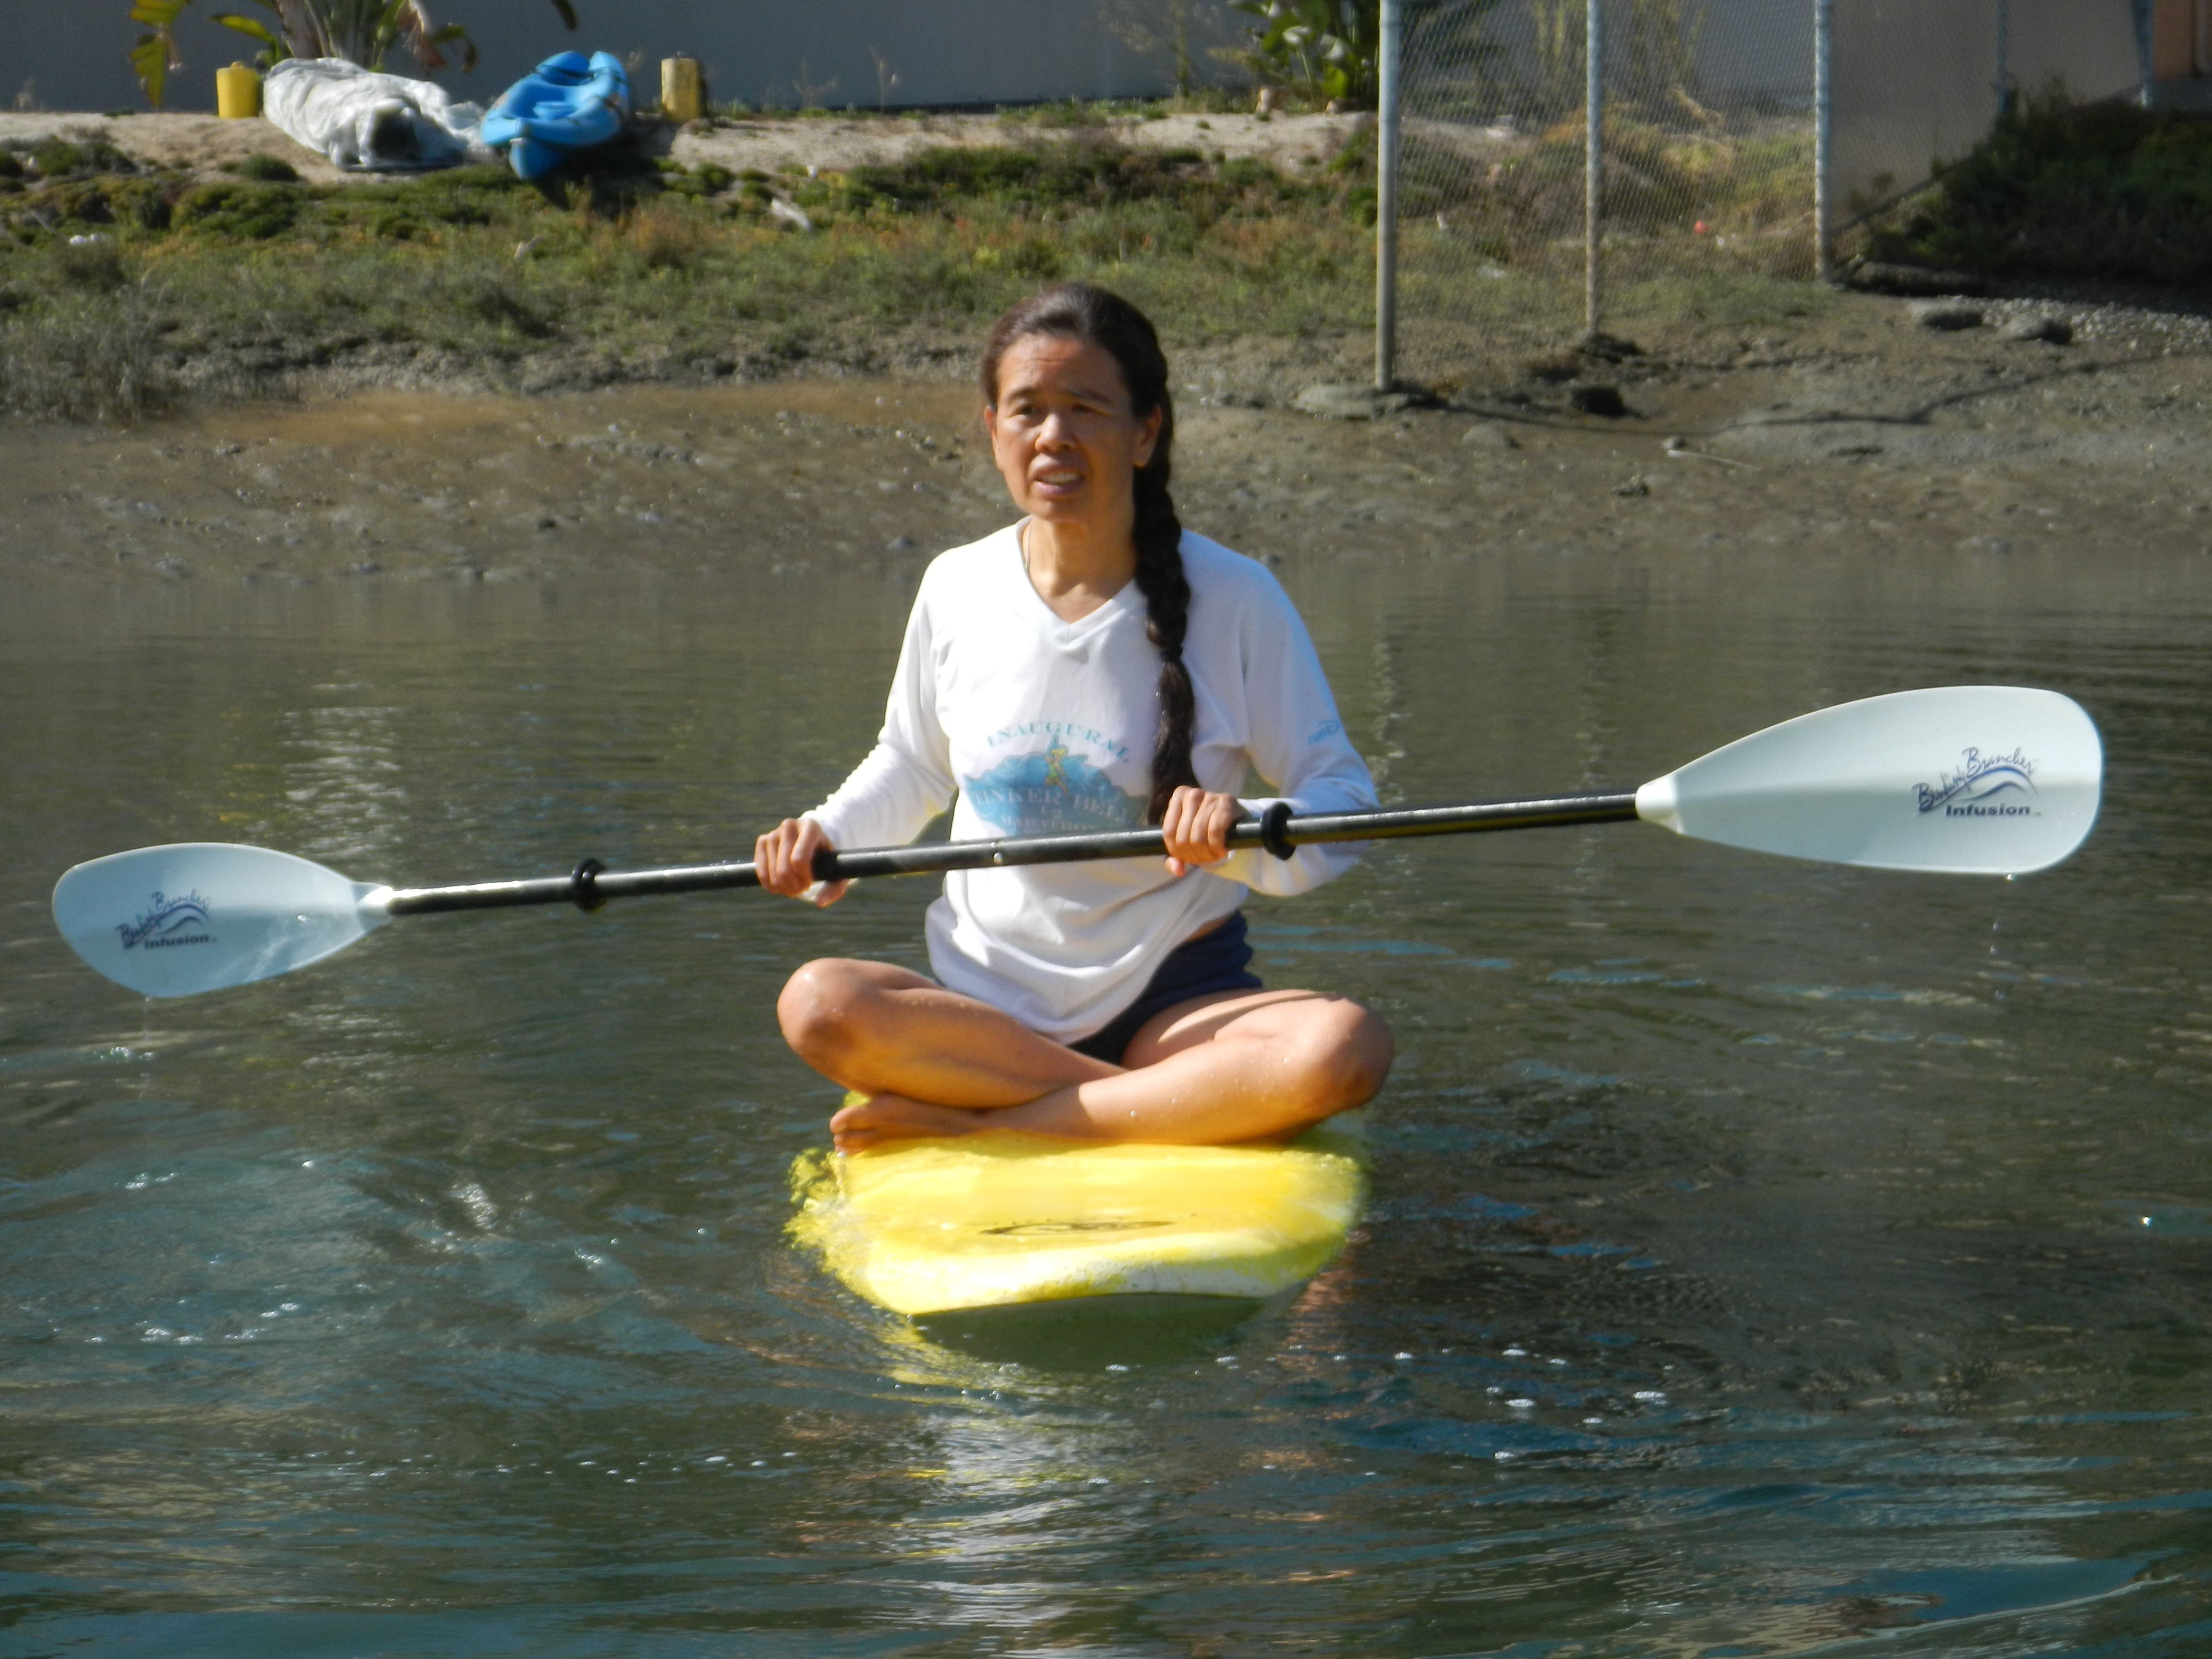 Cathy also teaches SUP Yoga